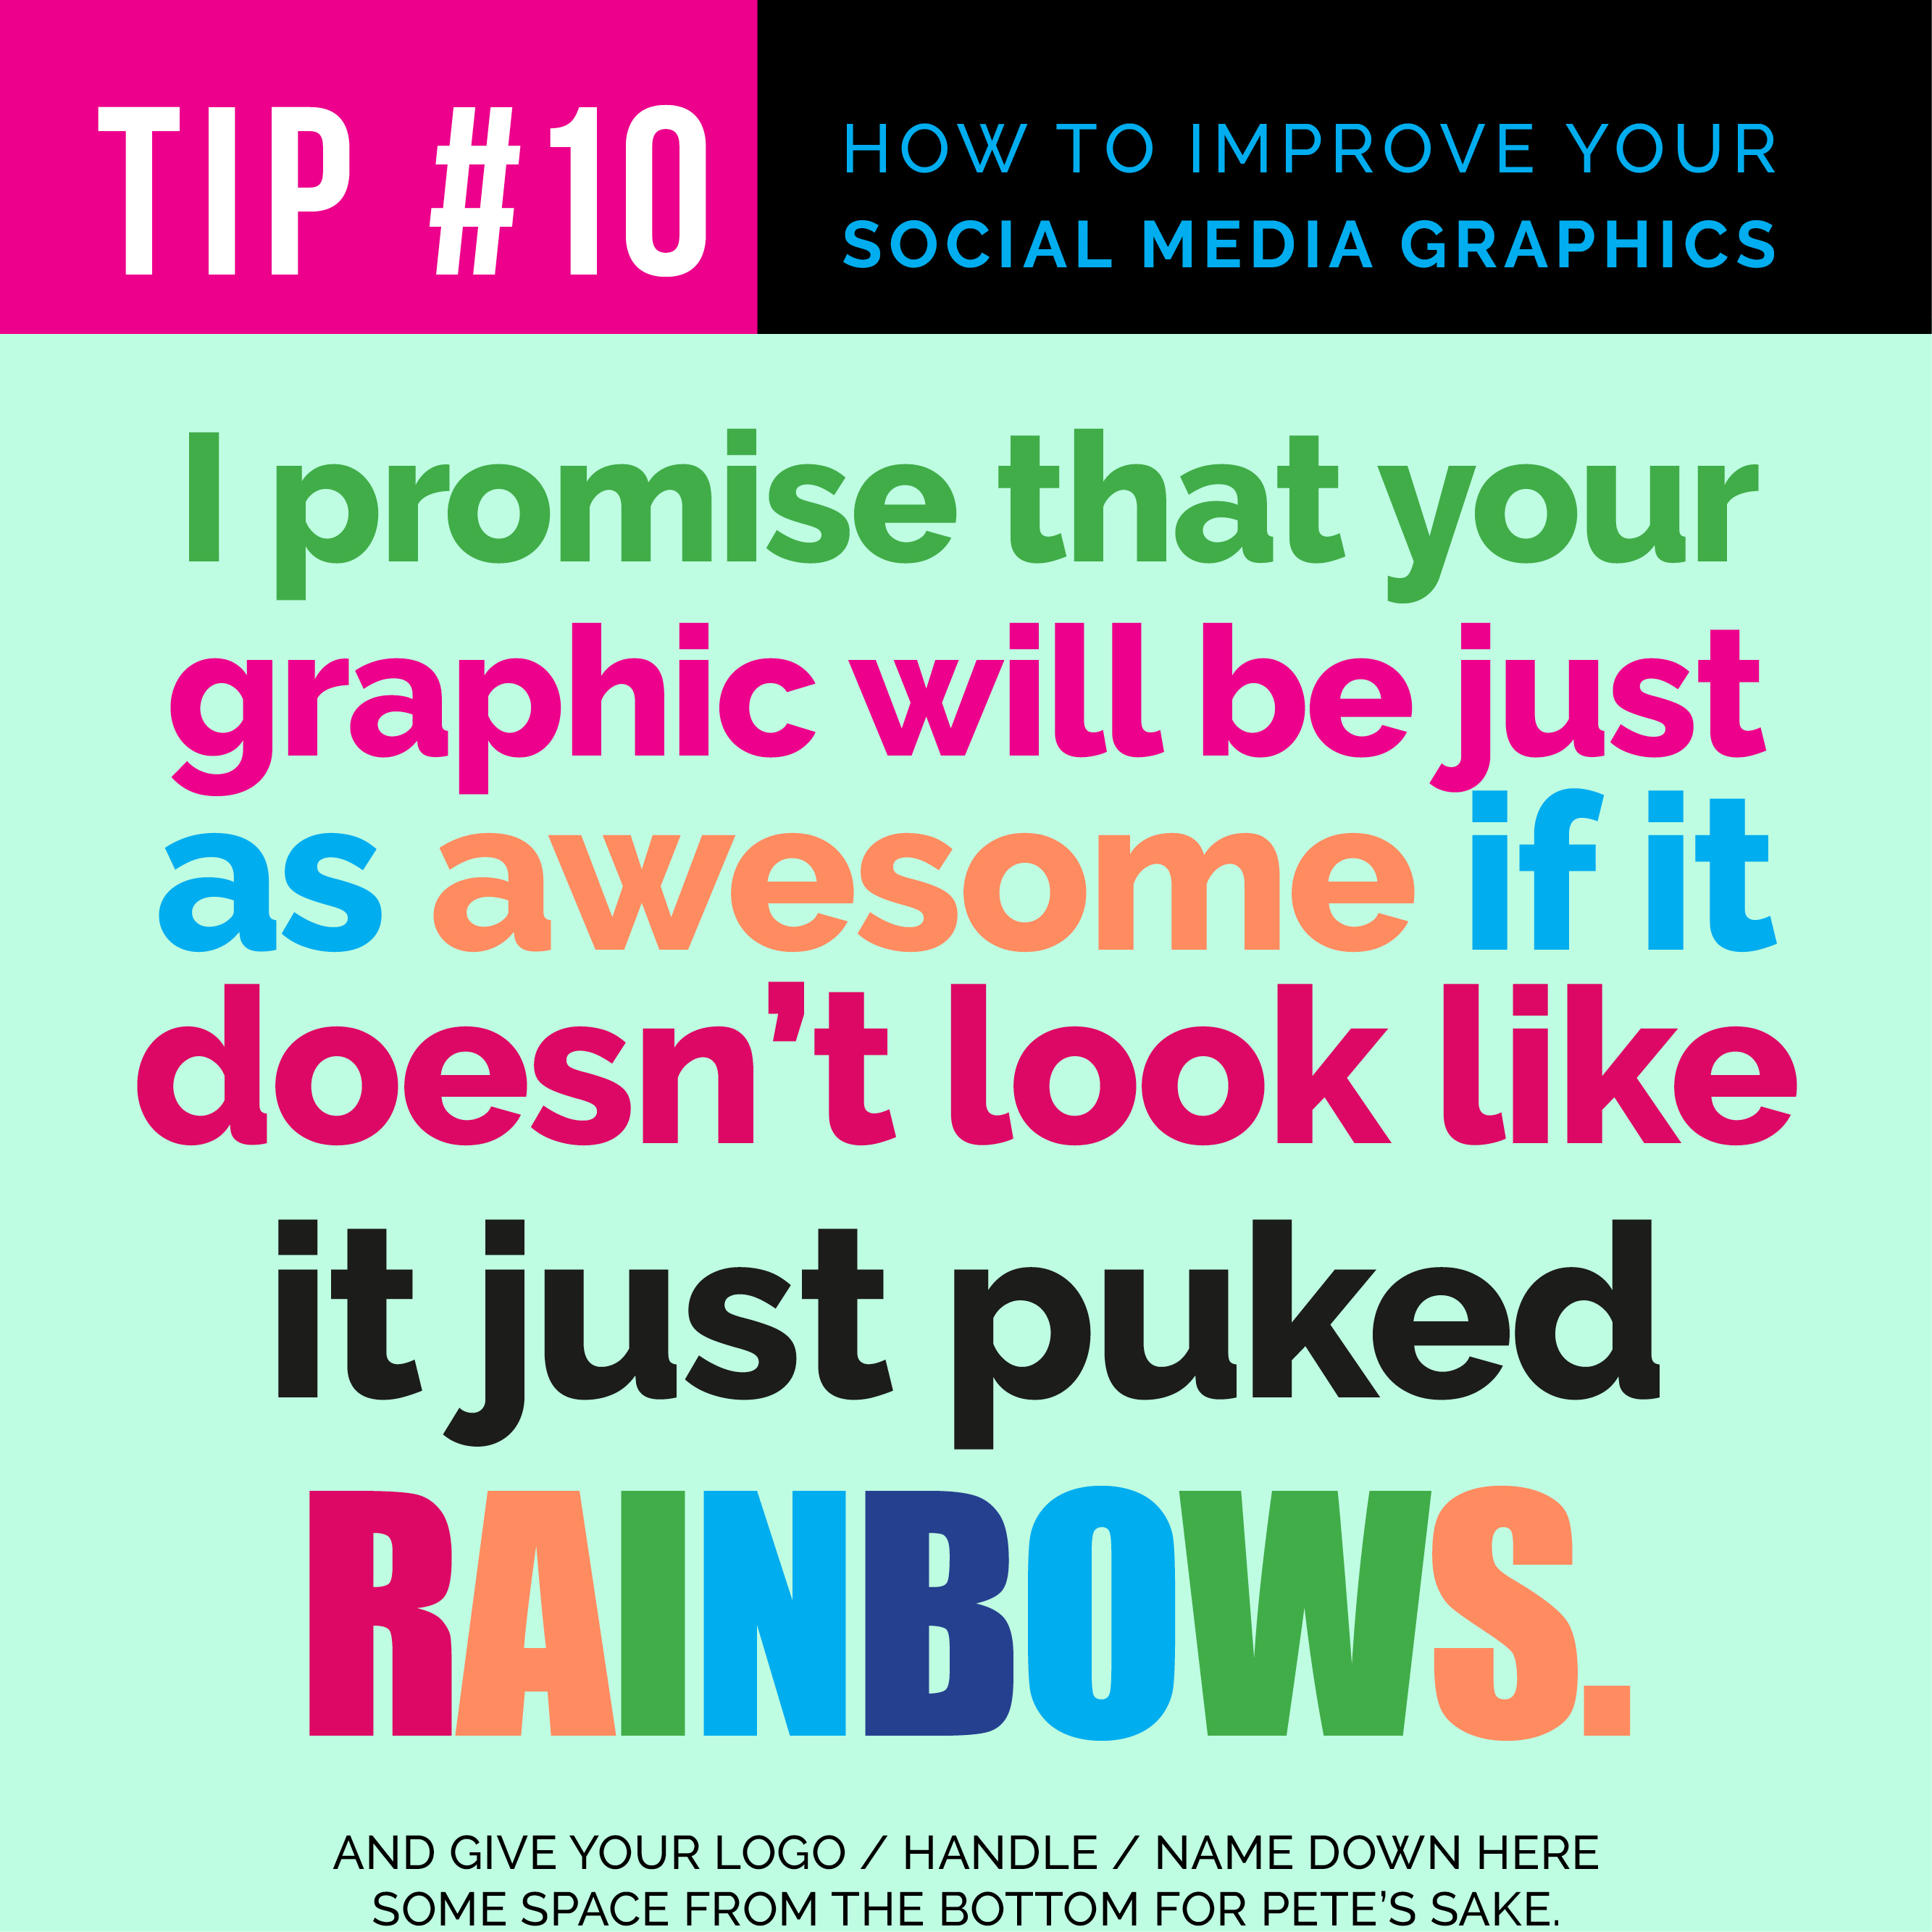 Tip #10: Tips for Creating Beautiful Social Media Images